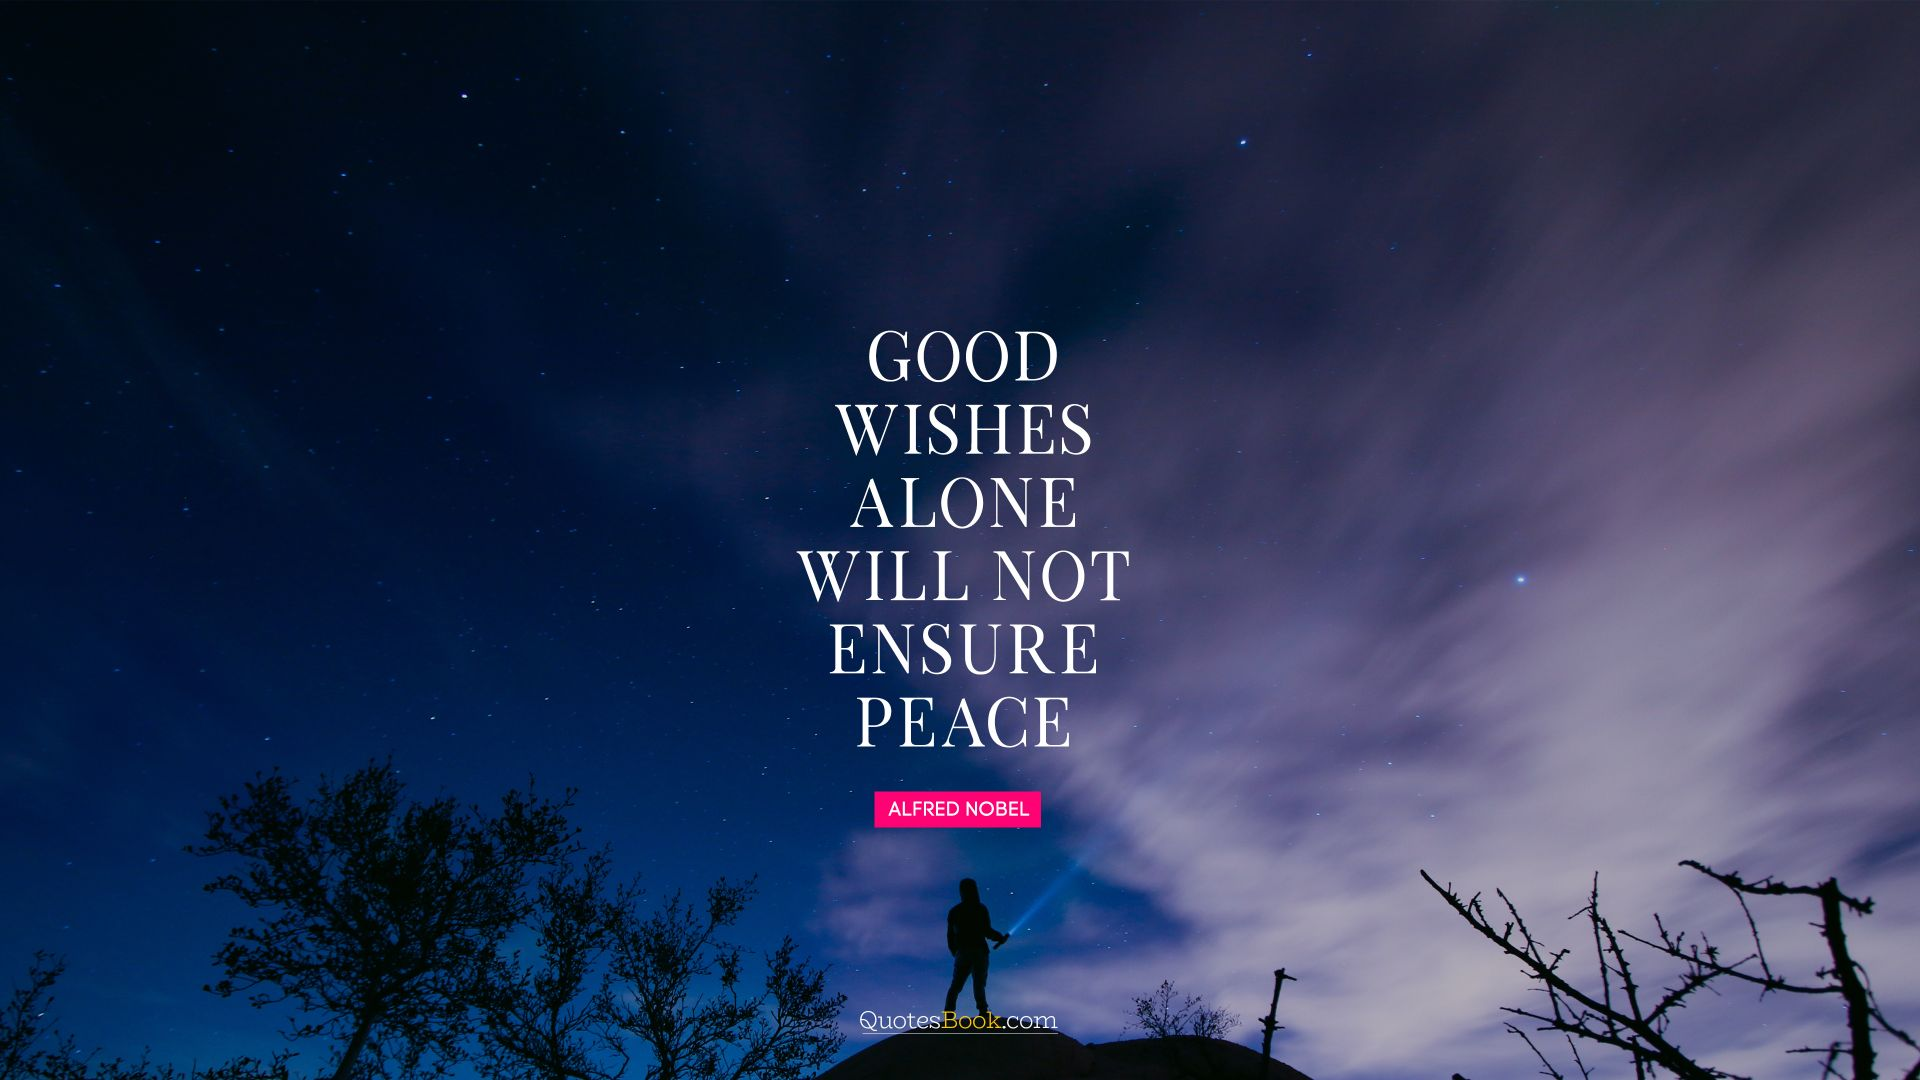 Good wishes alone will not ensure peace. - Quote by Alfred Nobel